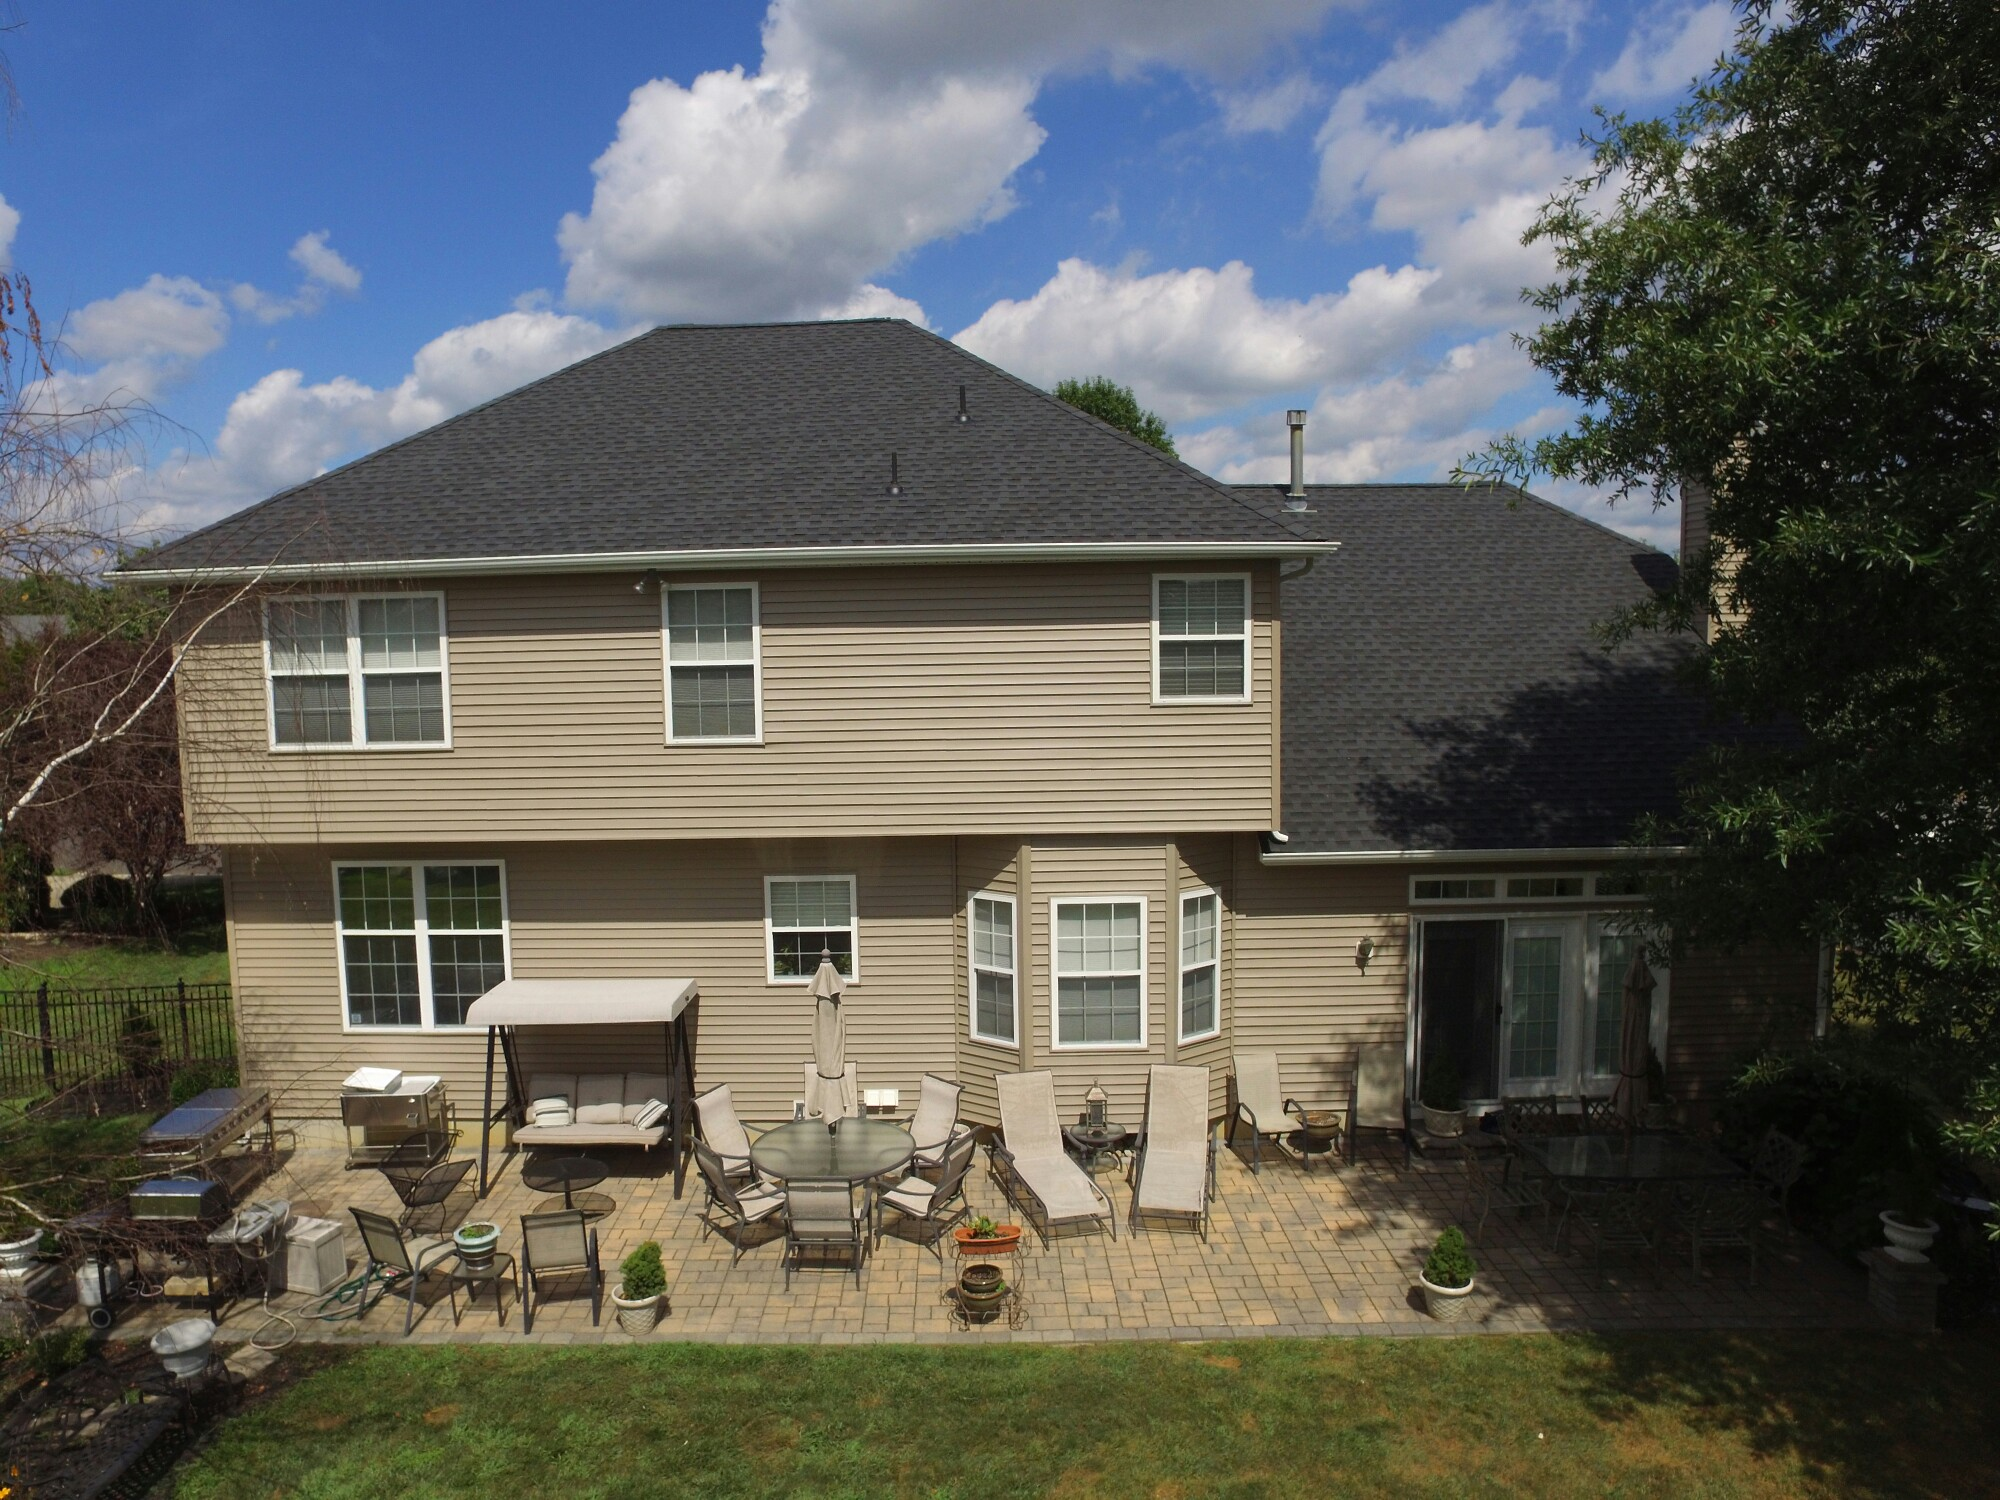 Gaf Timberline Hd Lifetime Roofing System With Charcoal